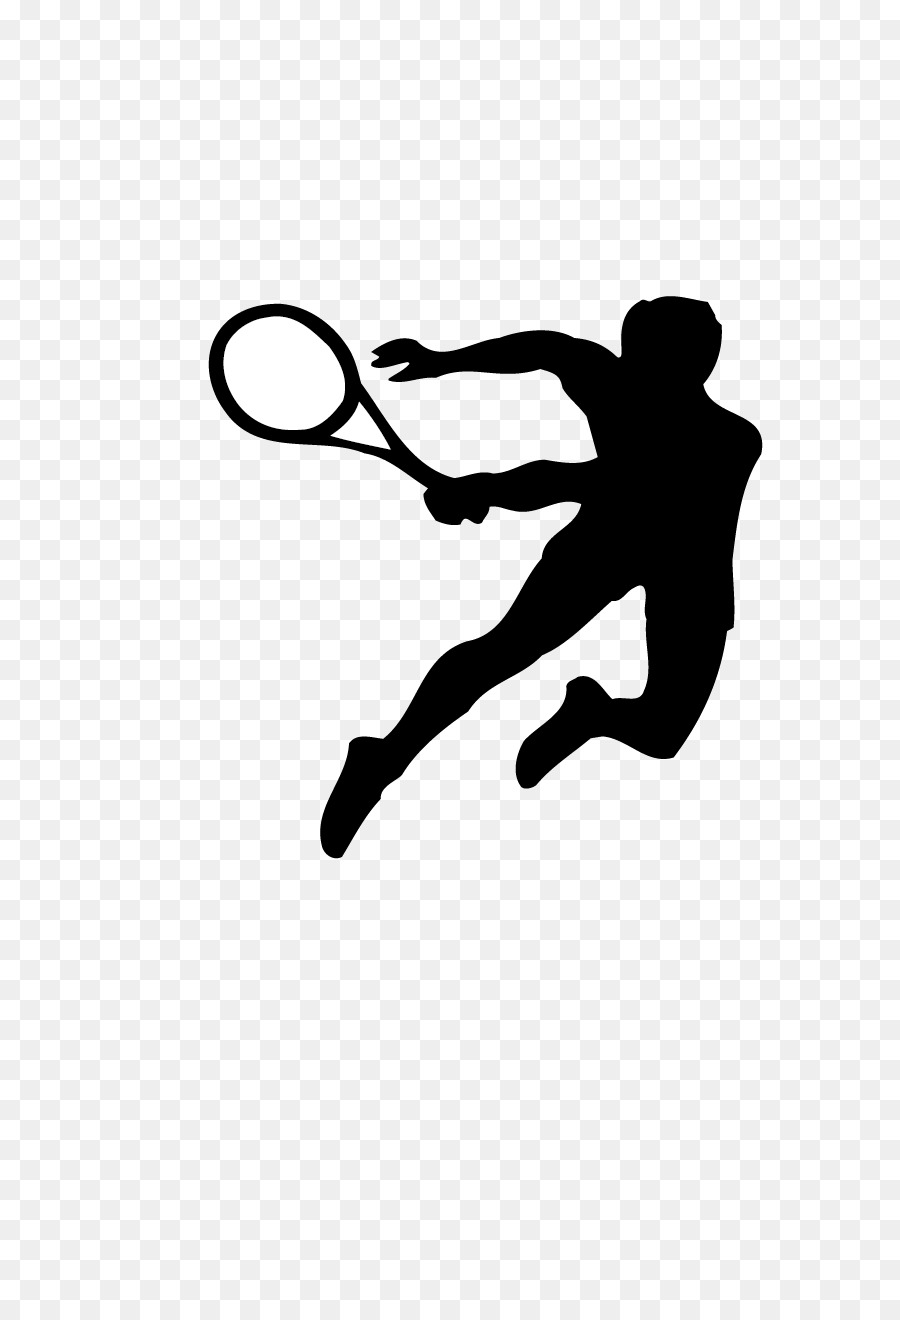 Tennis laces clipart banner royalty free library Sport Basketball American football Goggles - Tennis ... banner royalty free library